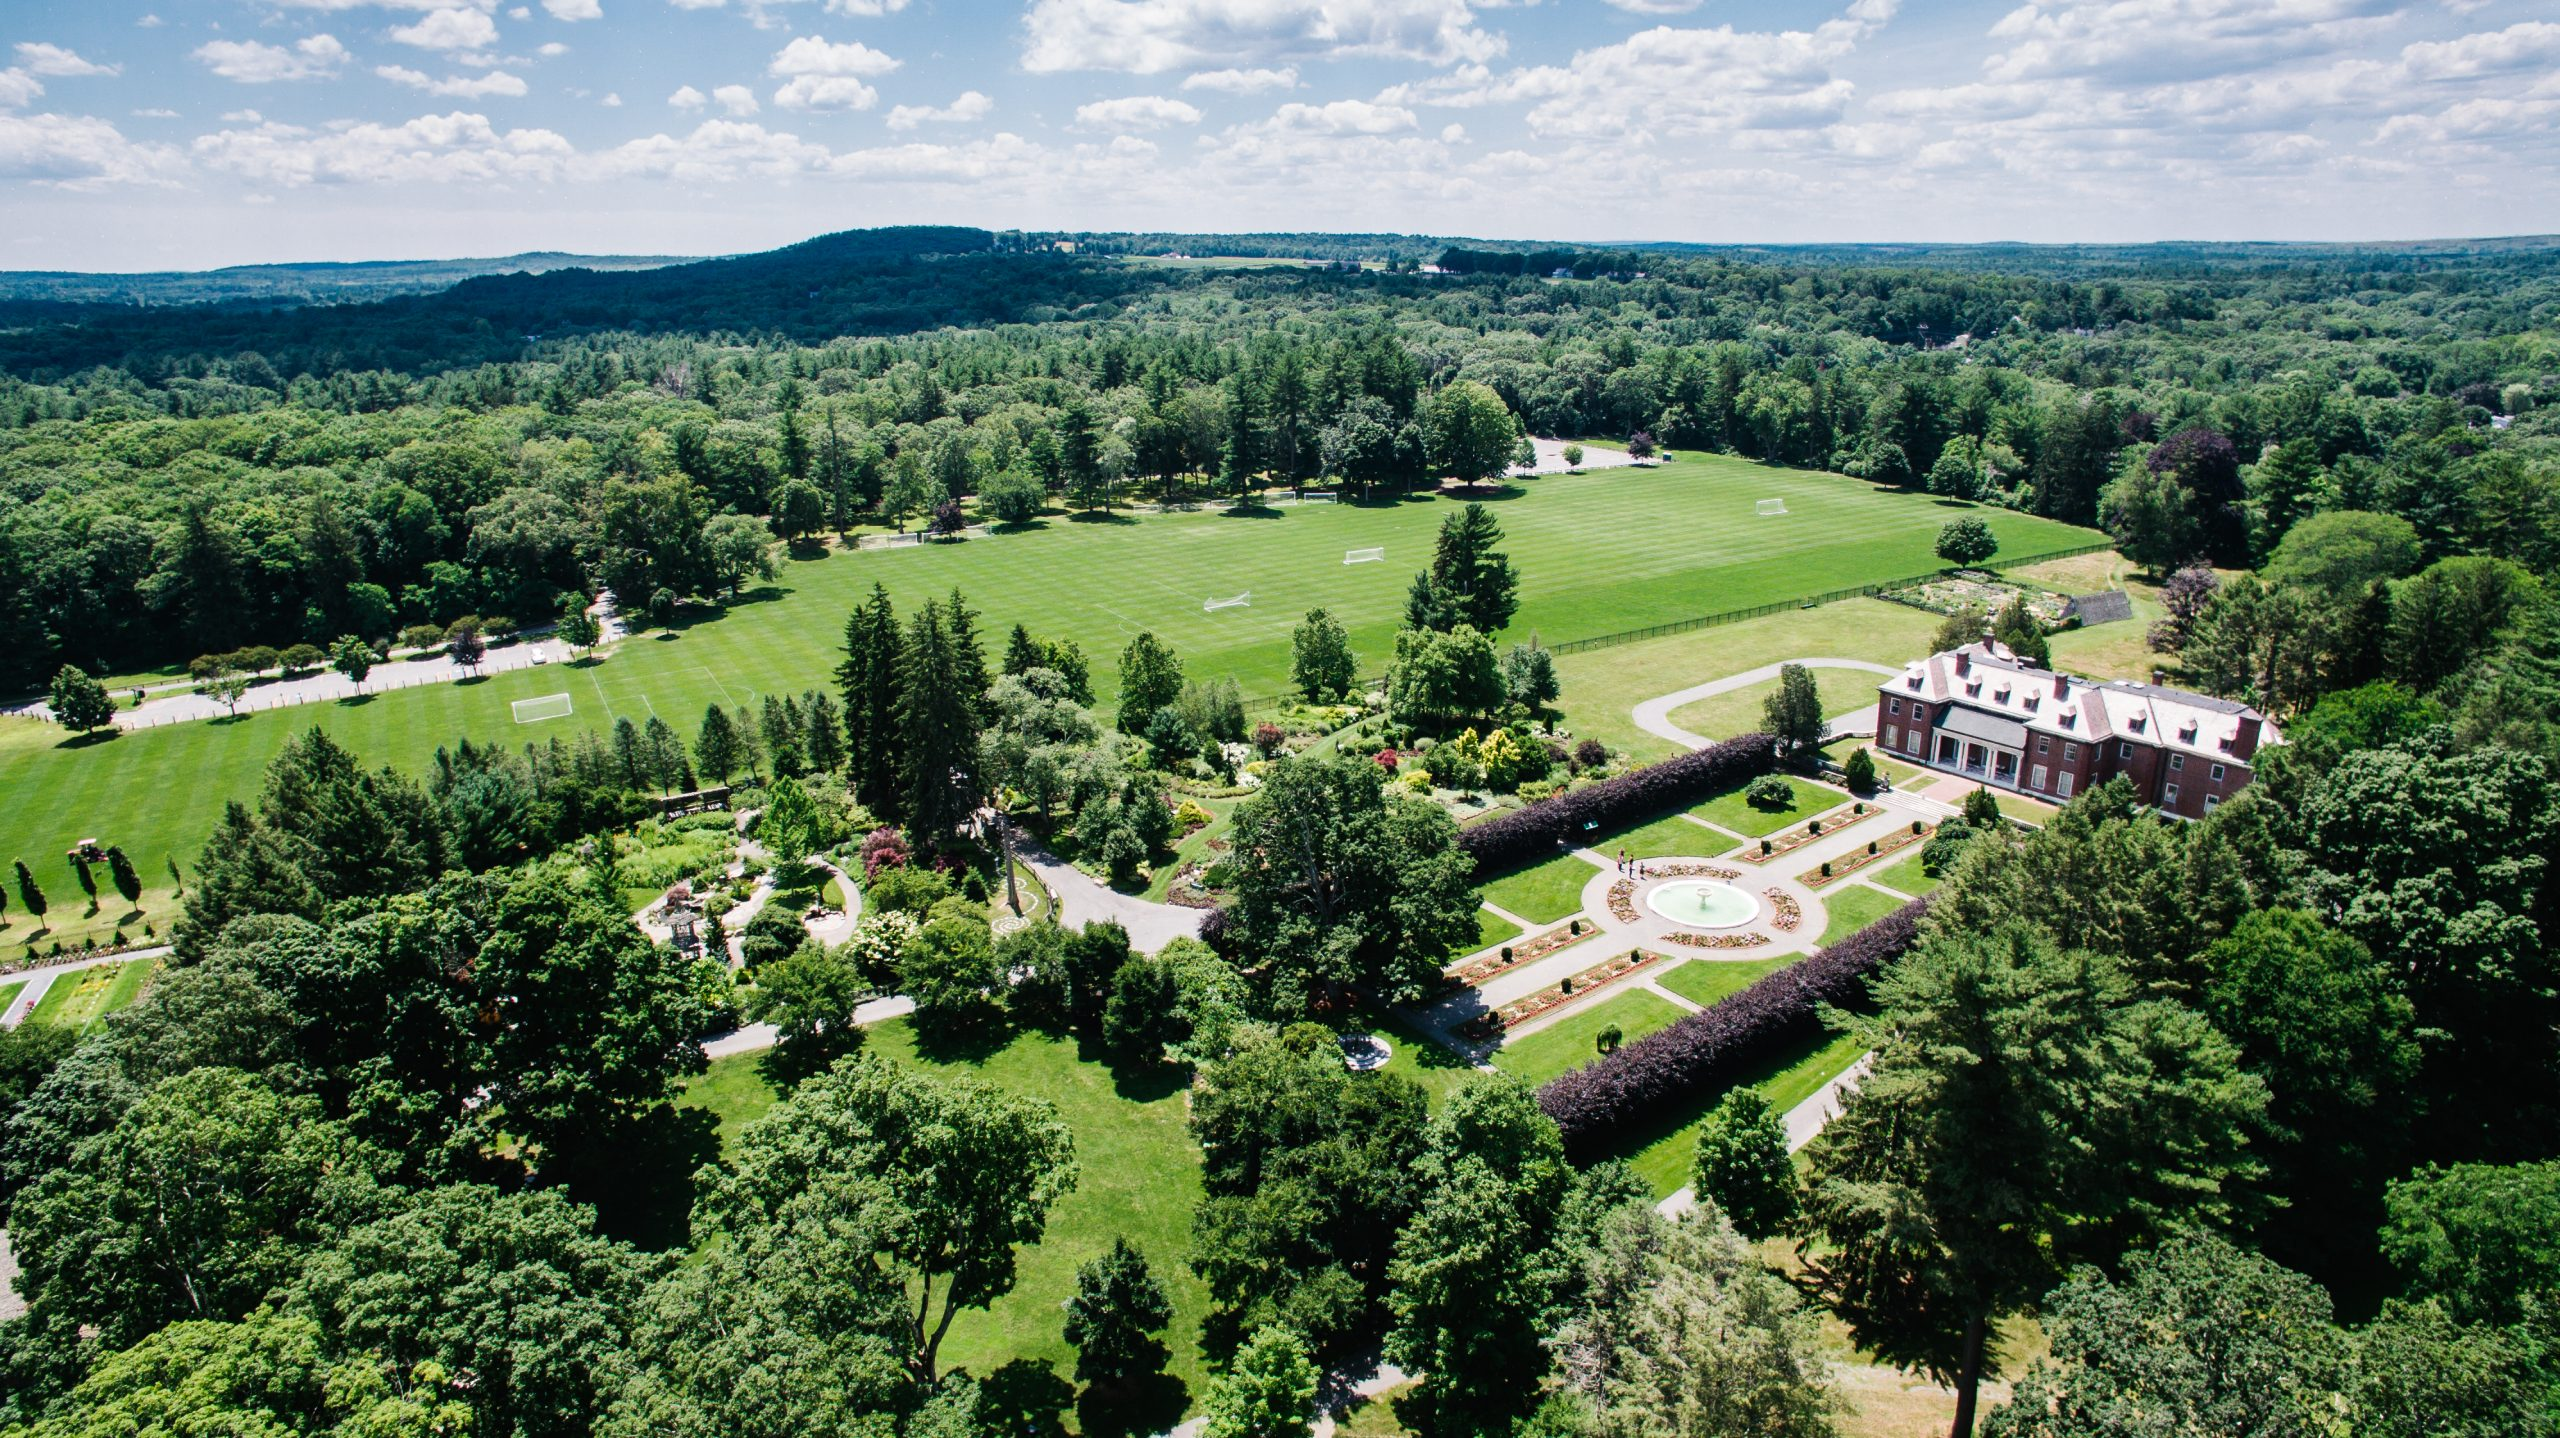 Image of The Gardens at Elm Bank – picturesque property along the Charles River that includes 36 acres of gardens, open fields, and historic buildings. Photo credit: DouglasOLyons Image, courtesy of Massachusetts Horticultural Society.